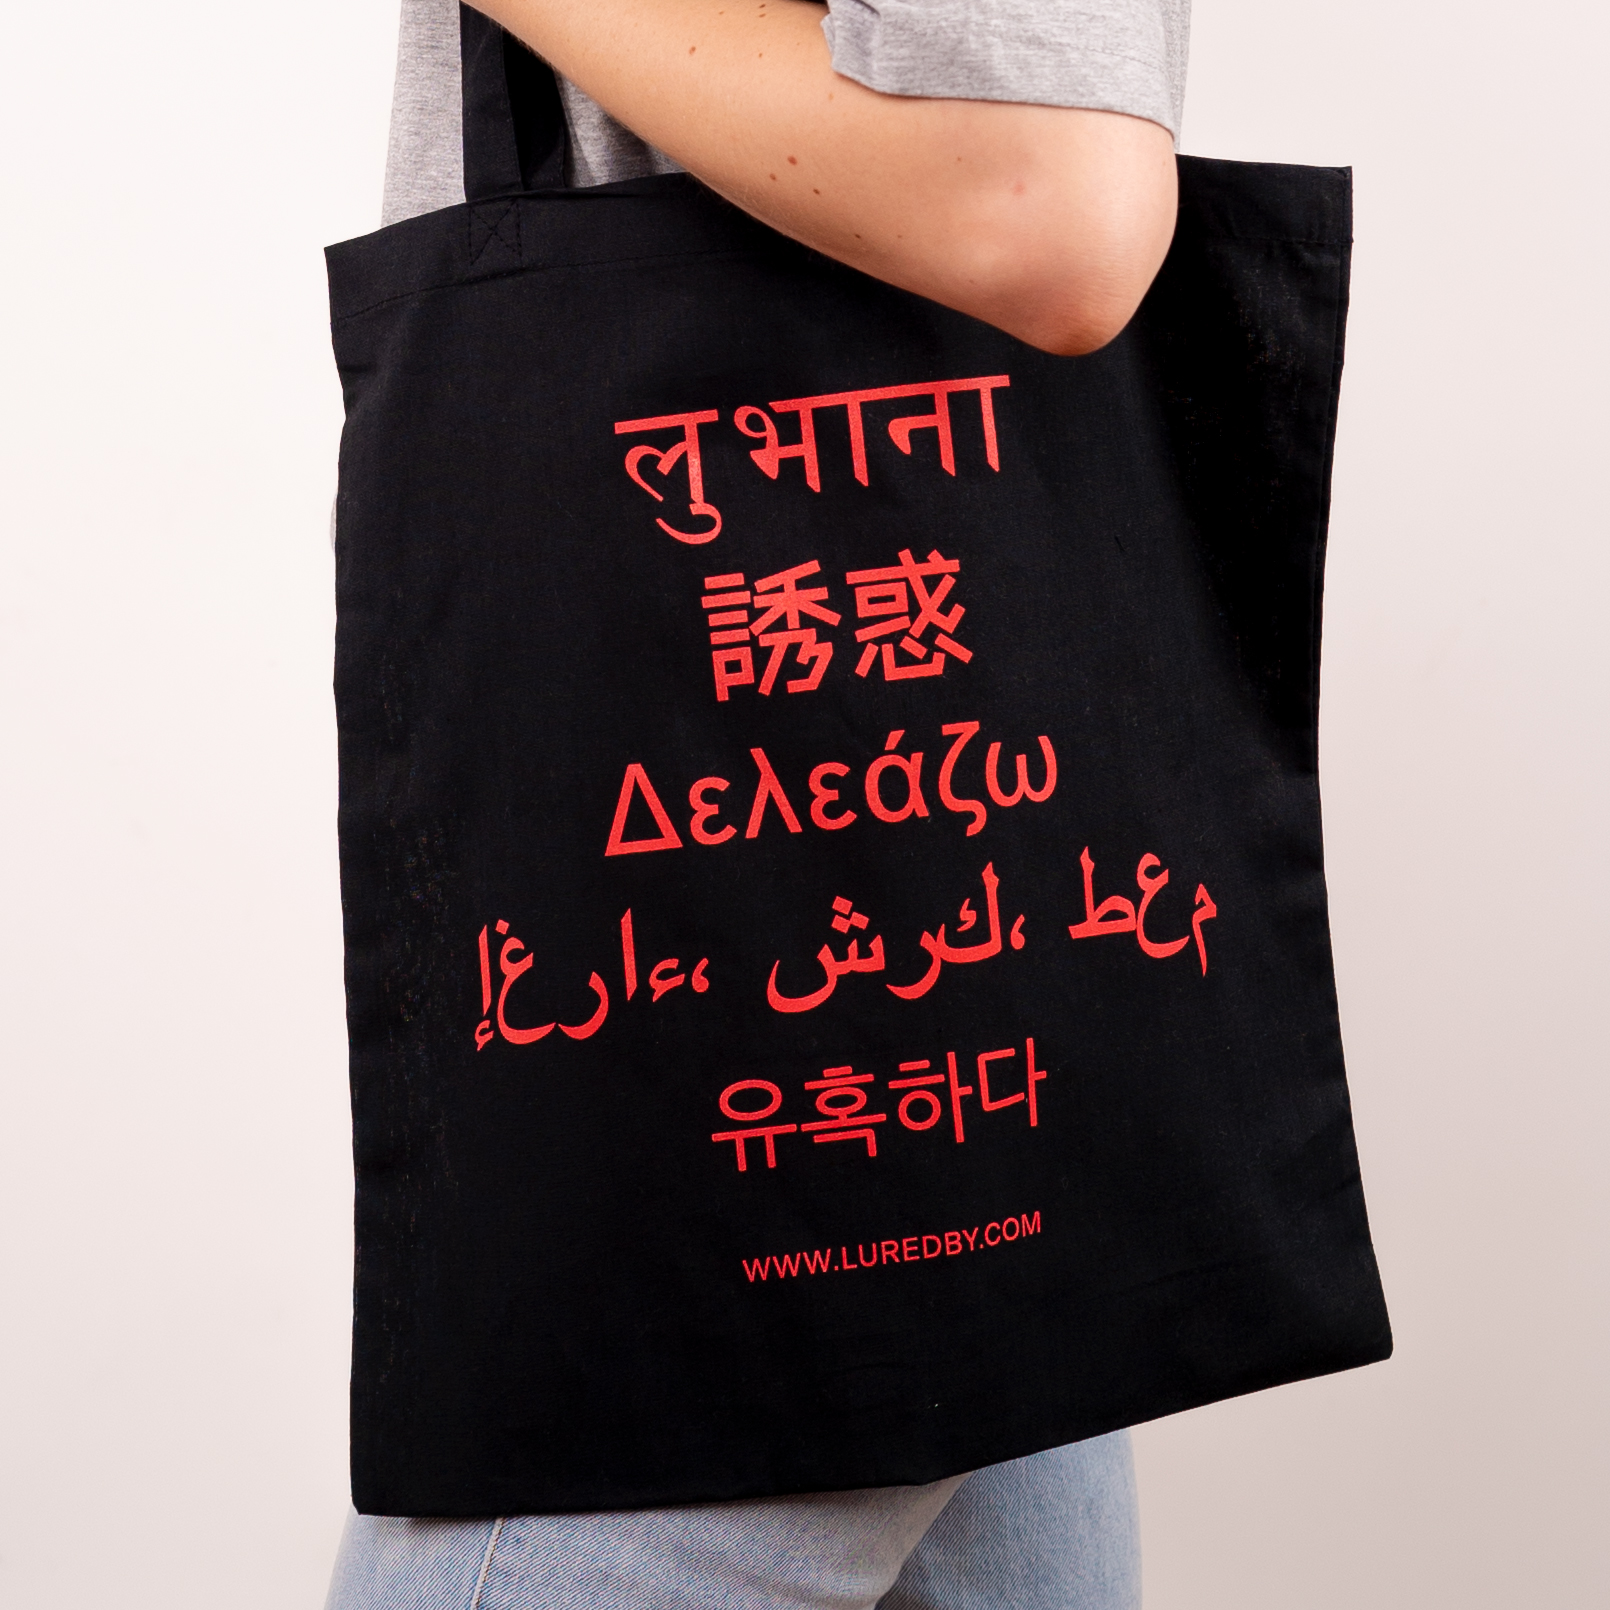 Black LURE Tote Bag - Travel in style with a LURE tote in black. Inspired by our stories, our collaborators, and our global network, the design features our name in Hindi, Japanese, Greek, Arabic and Korean.Enter to win a black LURE tote bag on Instagram.